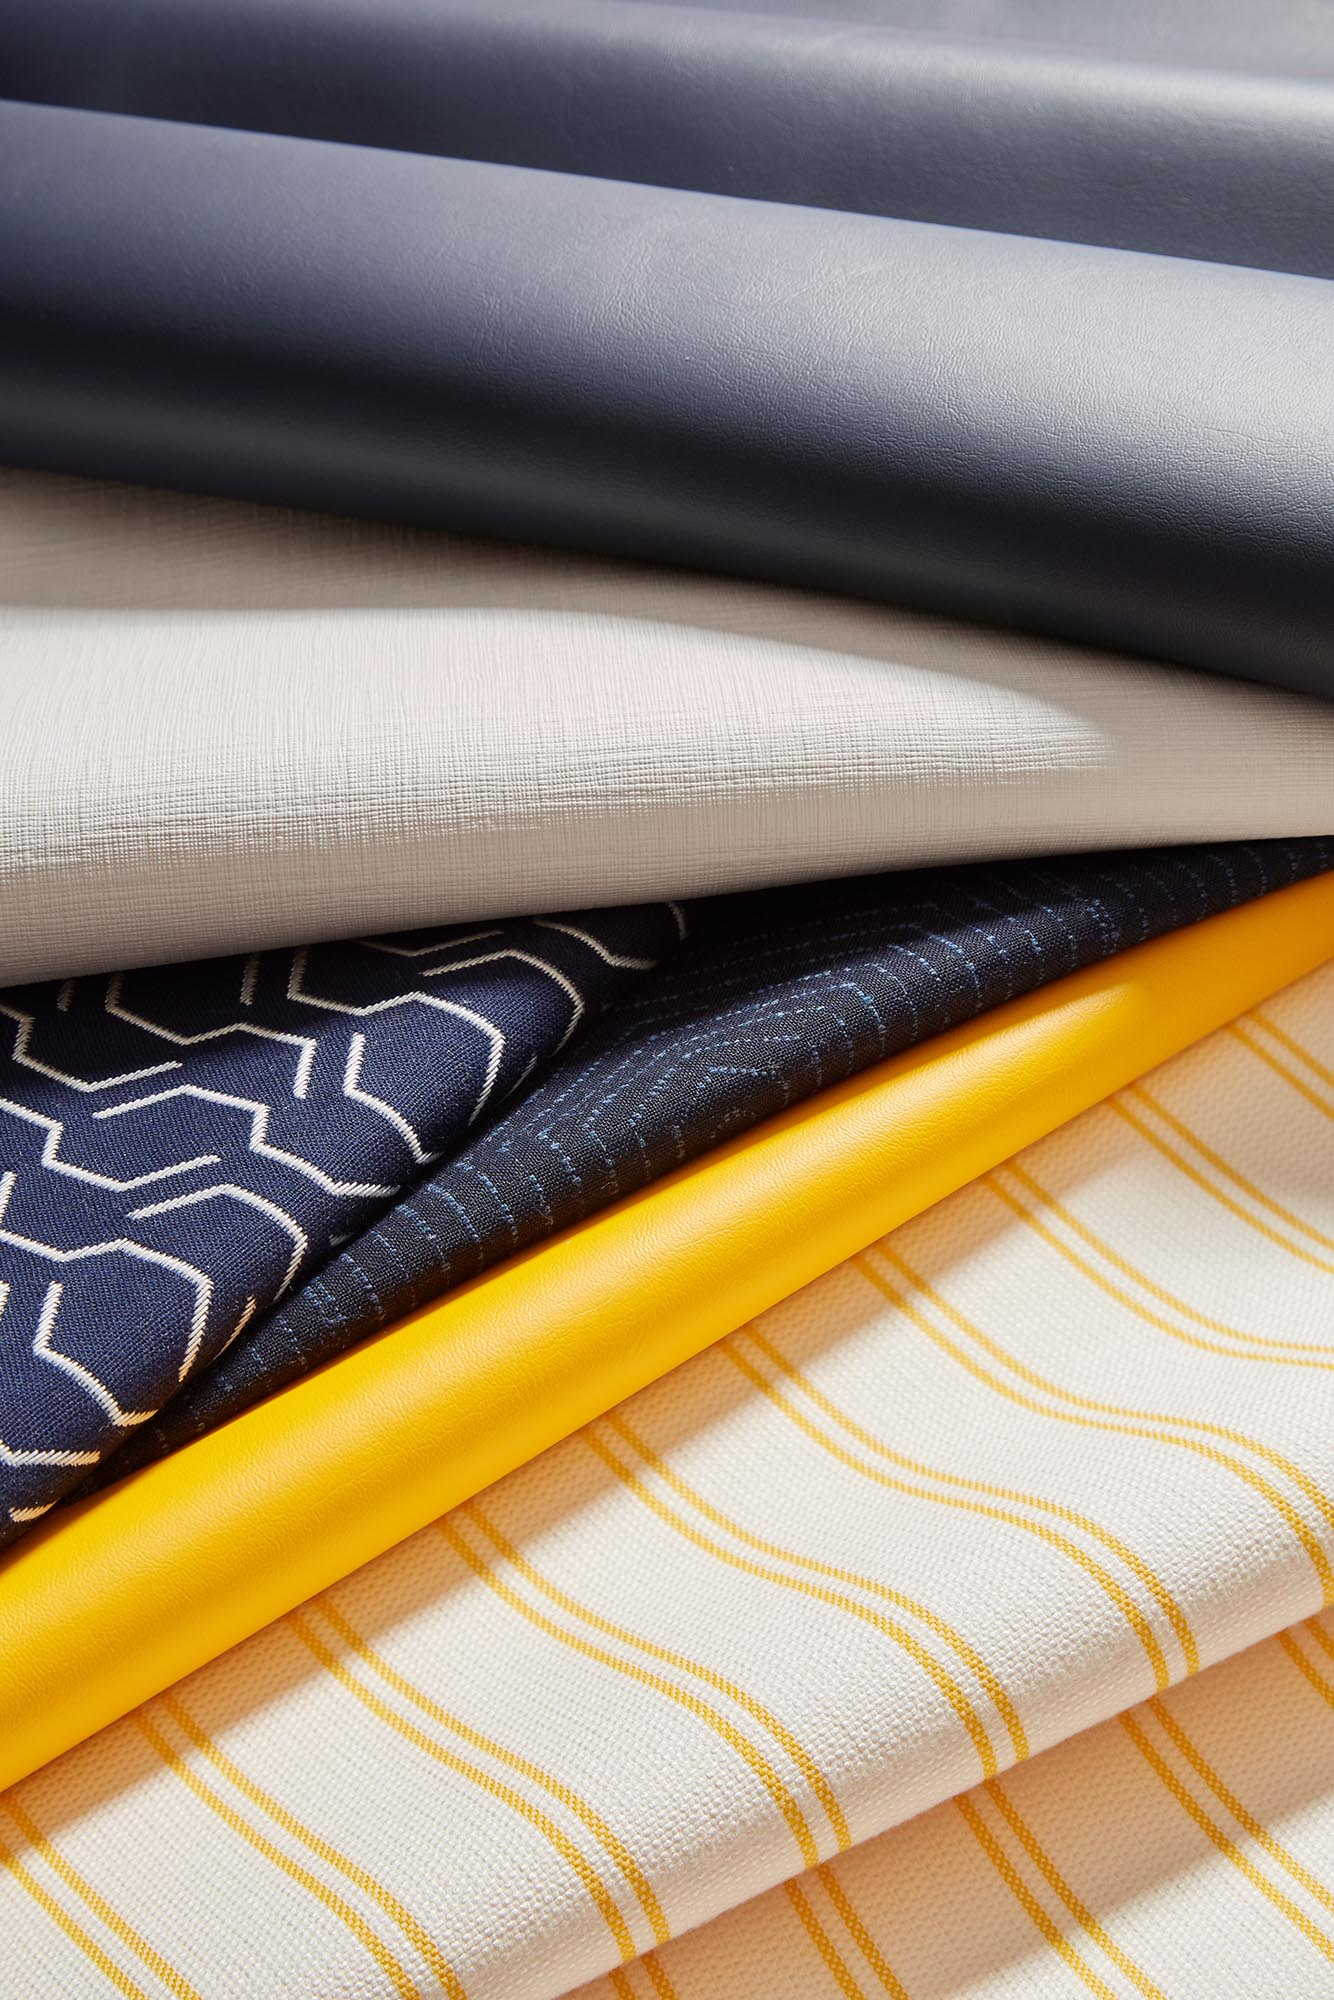 Sunbrella Marine Upholstery Collection, Blue and Yellow Fabrics